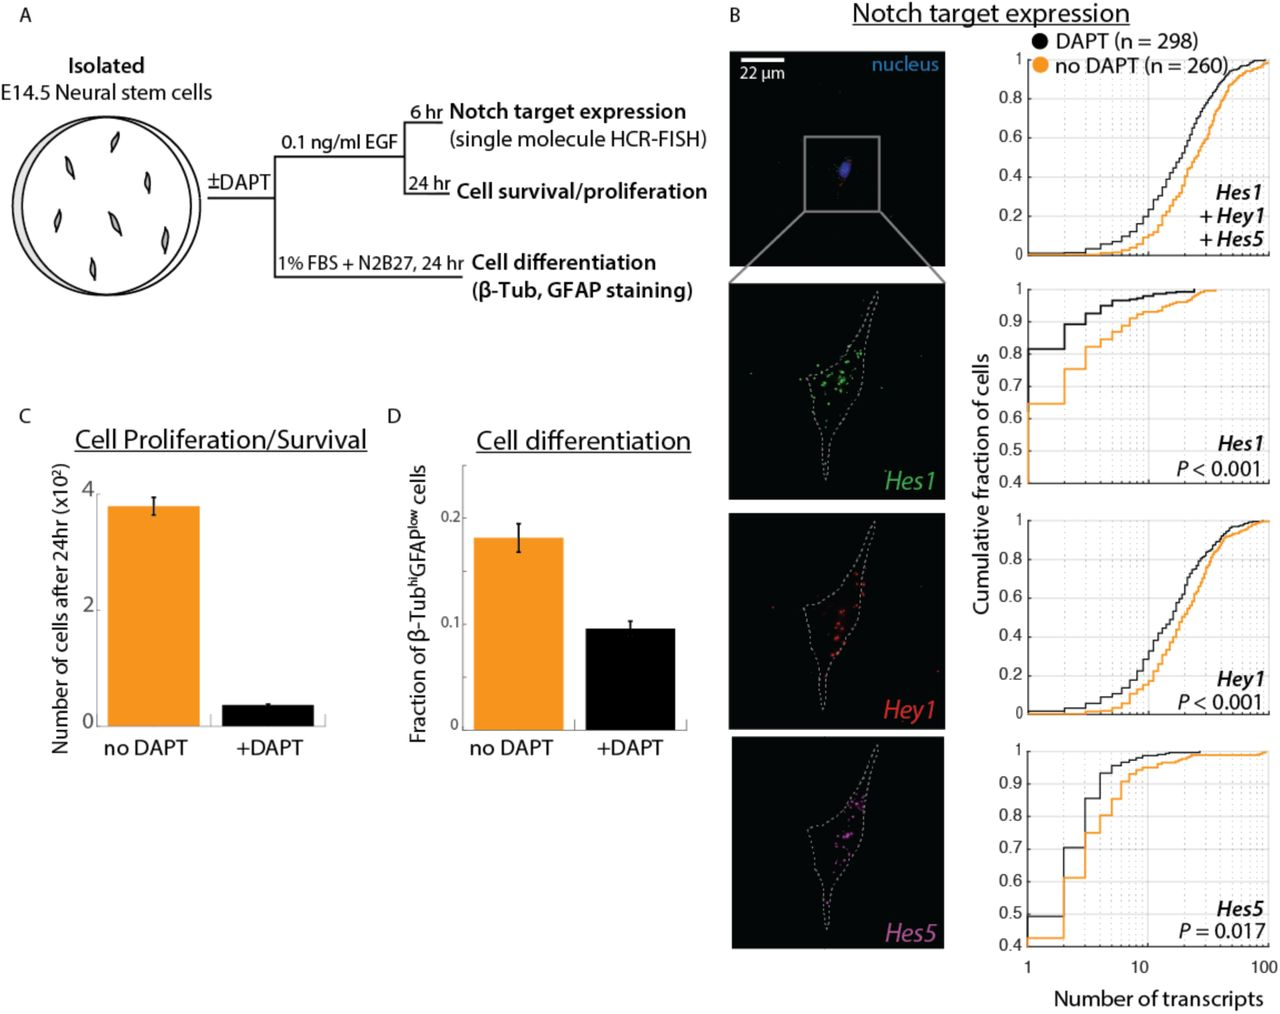 Cis-activation in the Notch signaling pathway   bioRxiv